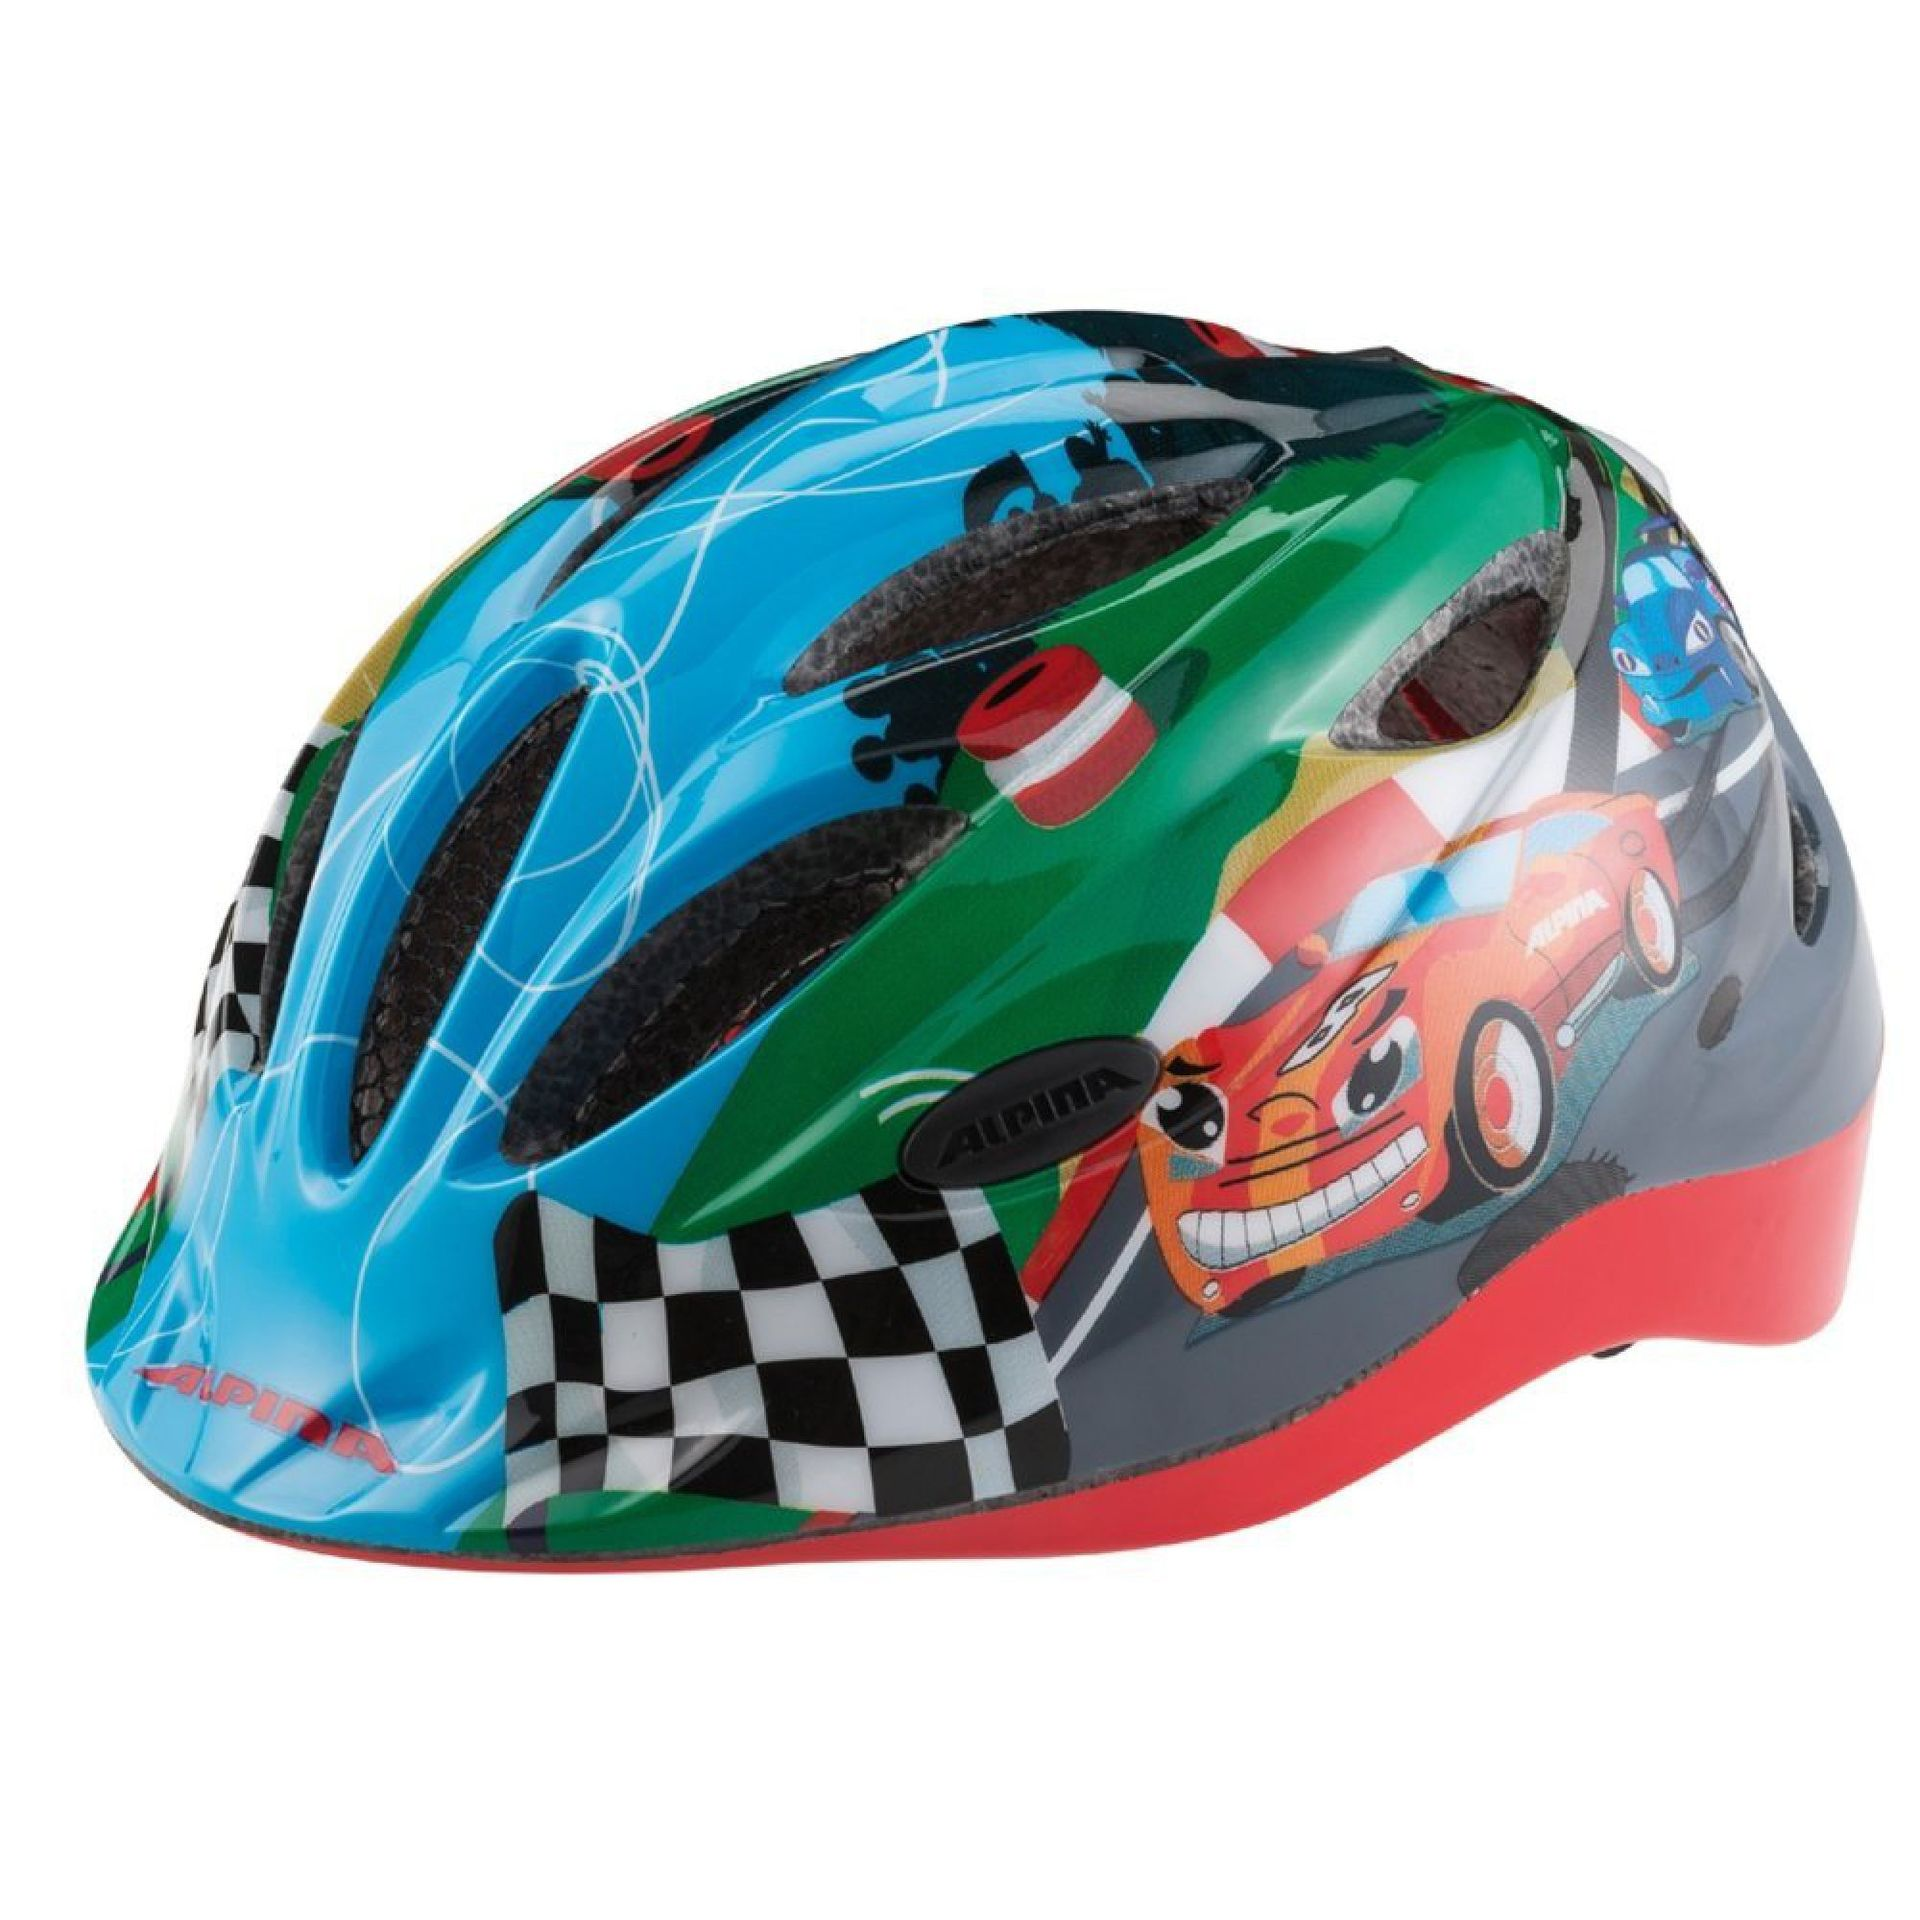 KASK ROWEROWY ALPINA GAMMA FLASH 2.0 RACING